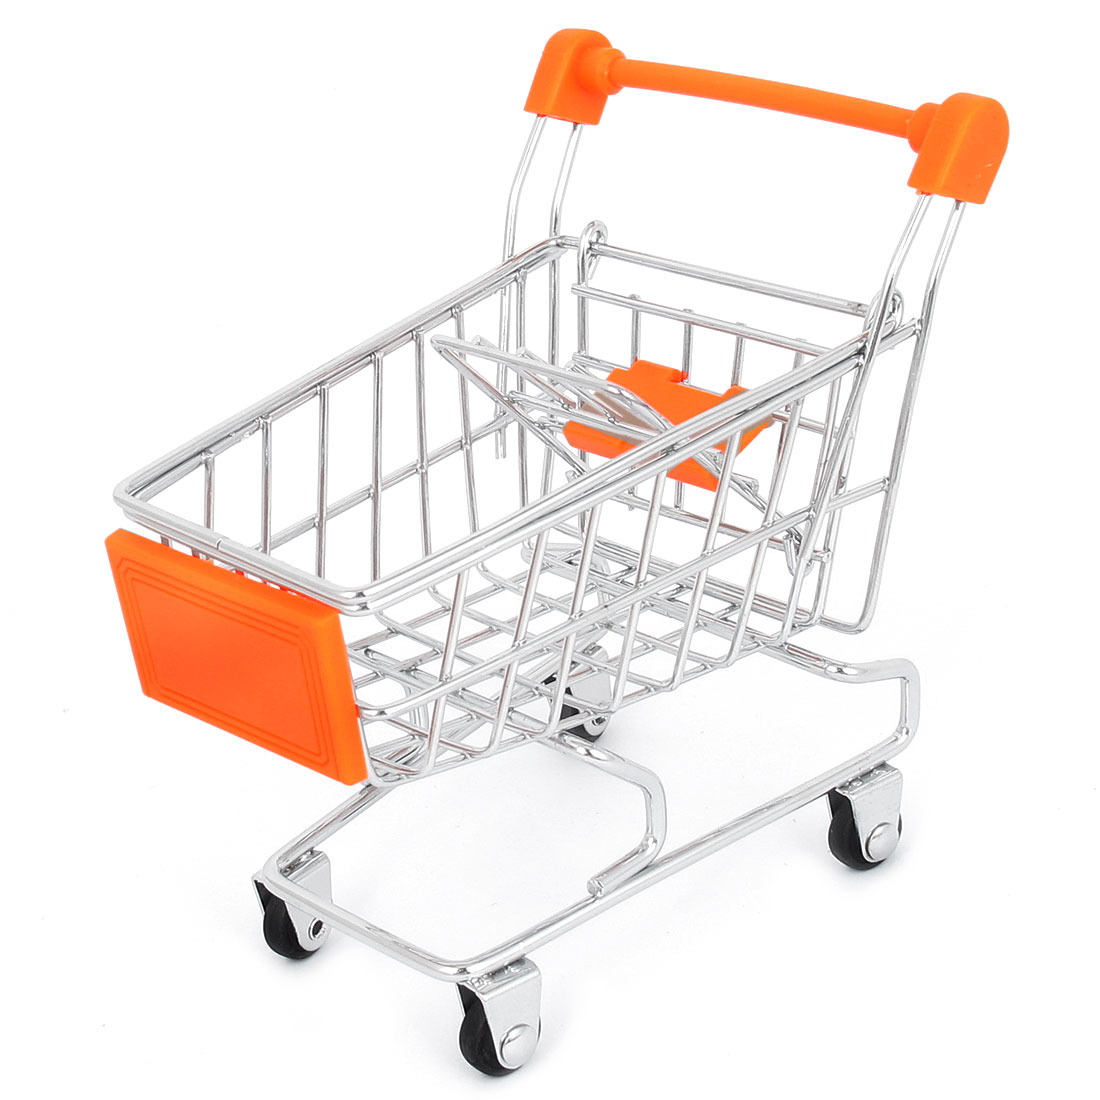 Stainless Steel Movable Shopping Cart Handcart Trolley Model Storage Toy Orange